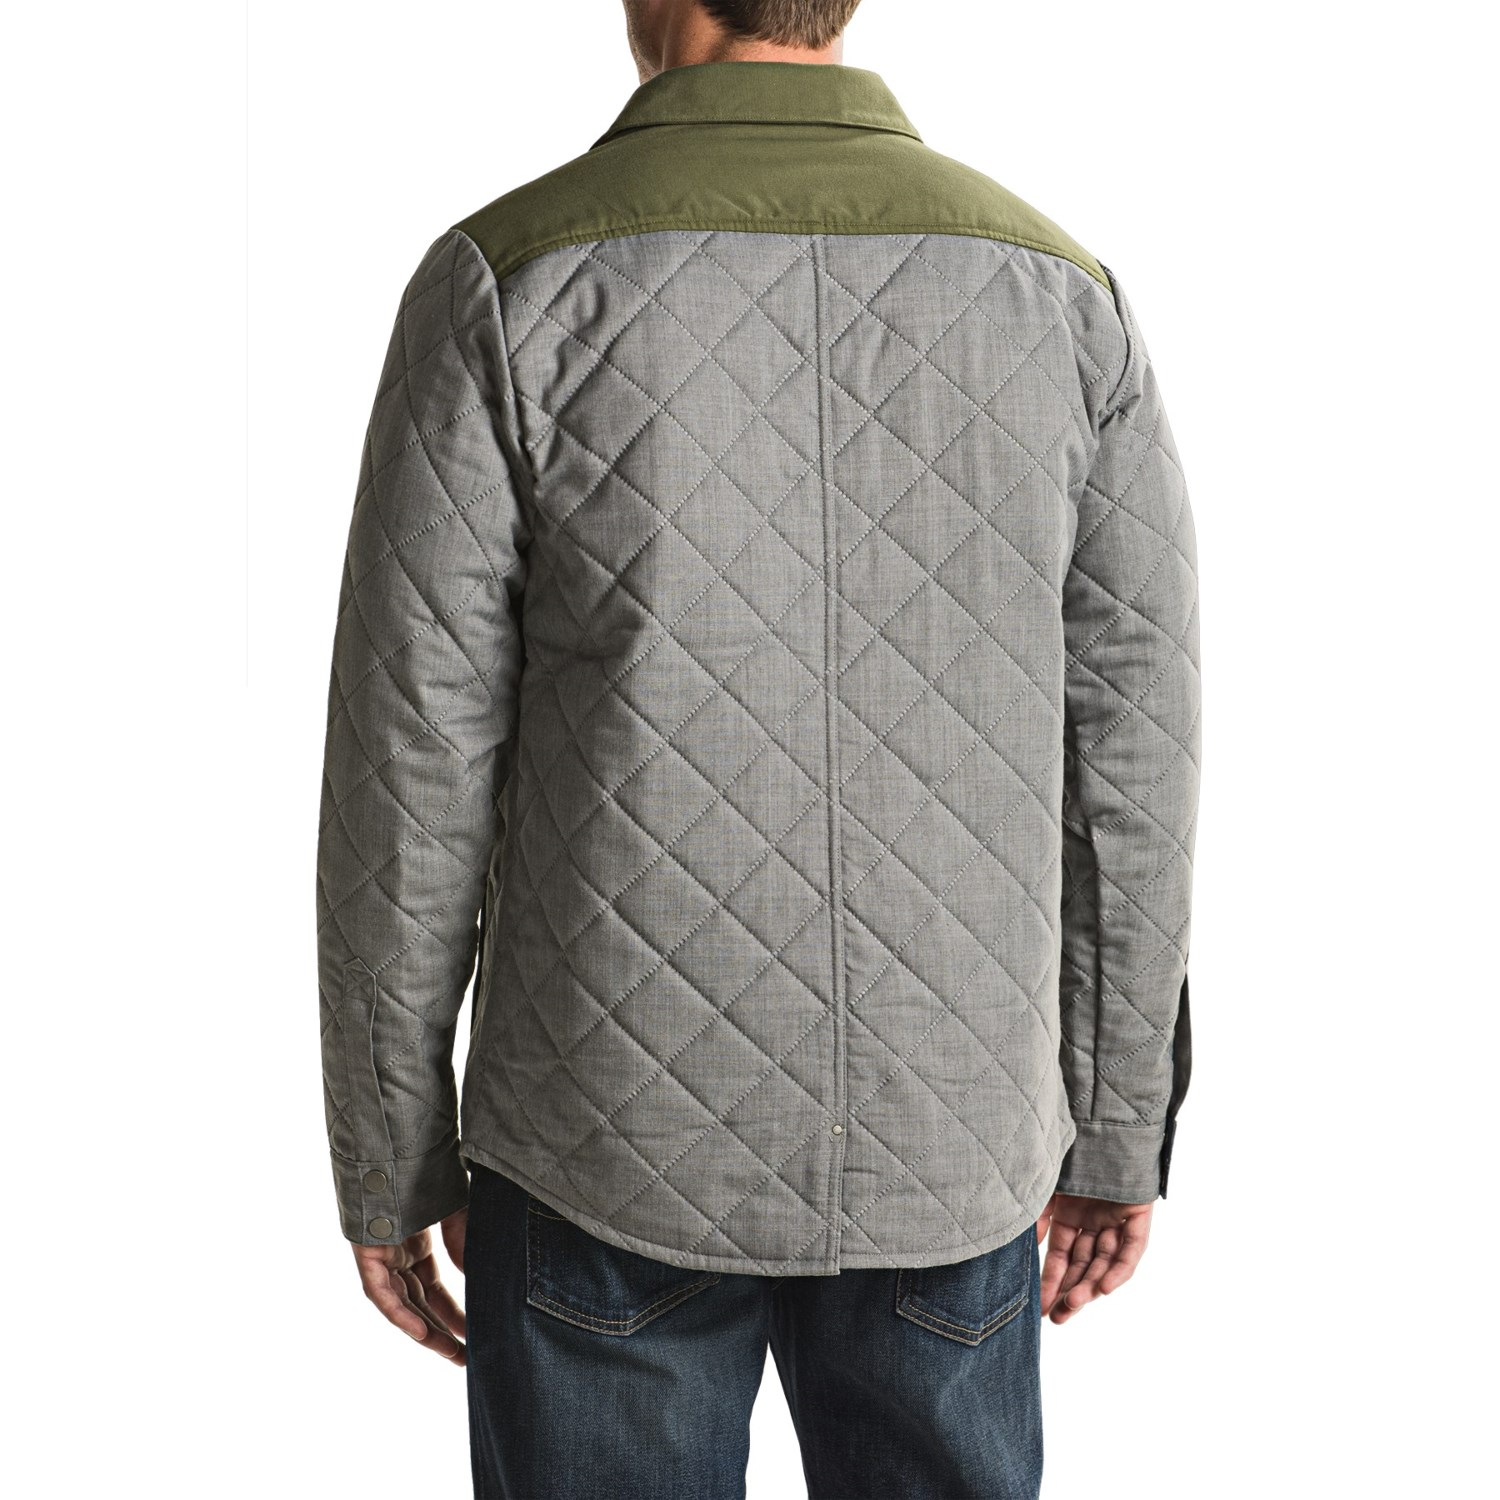 Smartwool Summit Quilted Shirt Jacket For Men